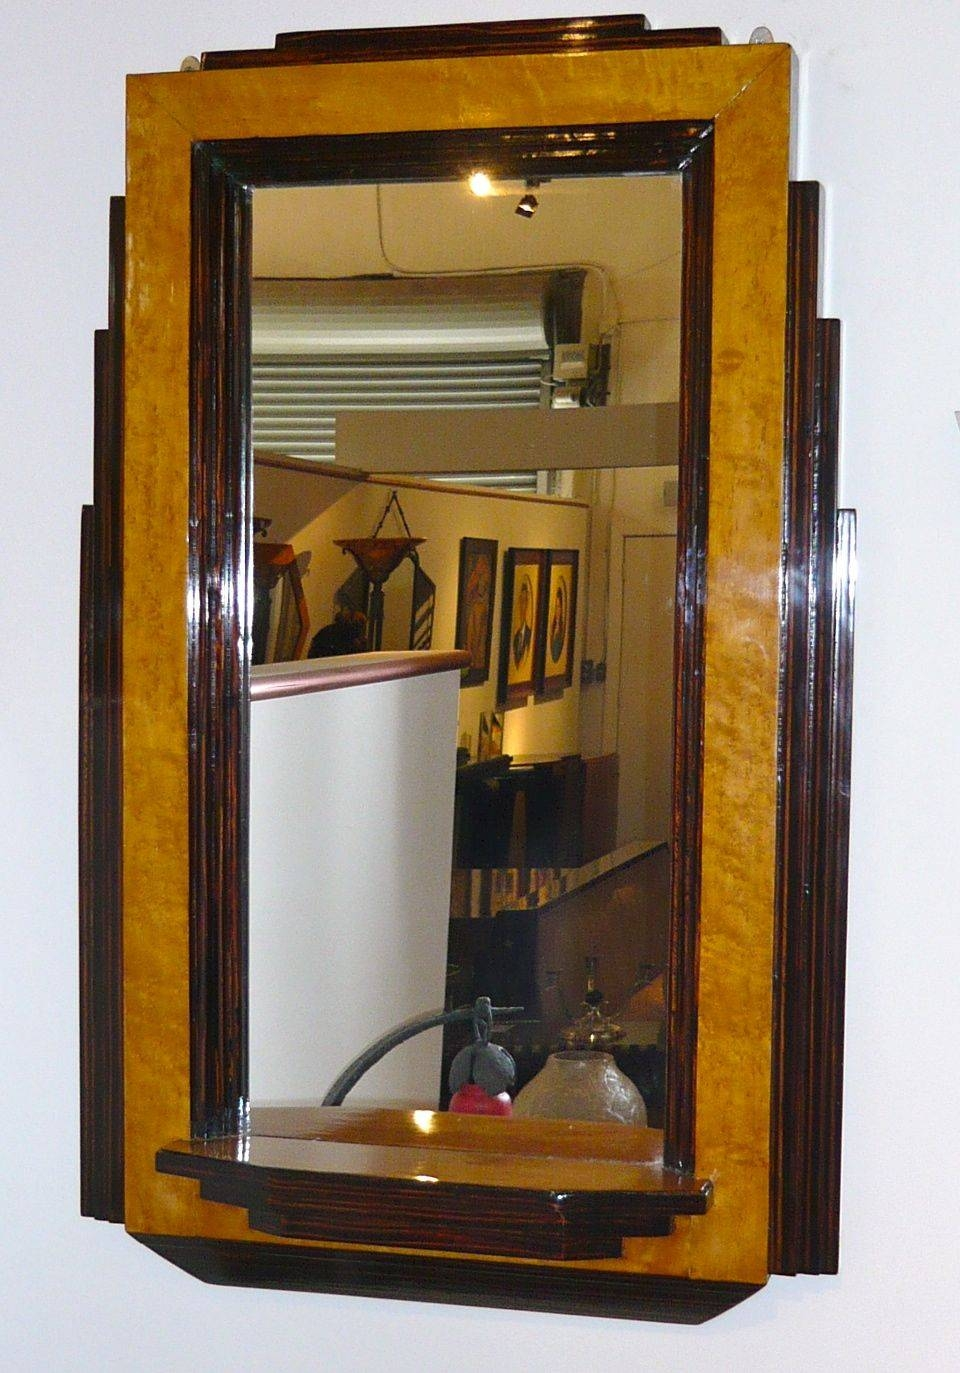 Art Deco Mirrors For Sale | Art Deco Collection with regard to Art Deco Mirrors (Image 5 of 25)